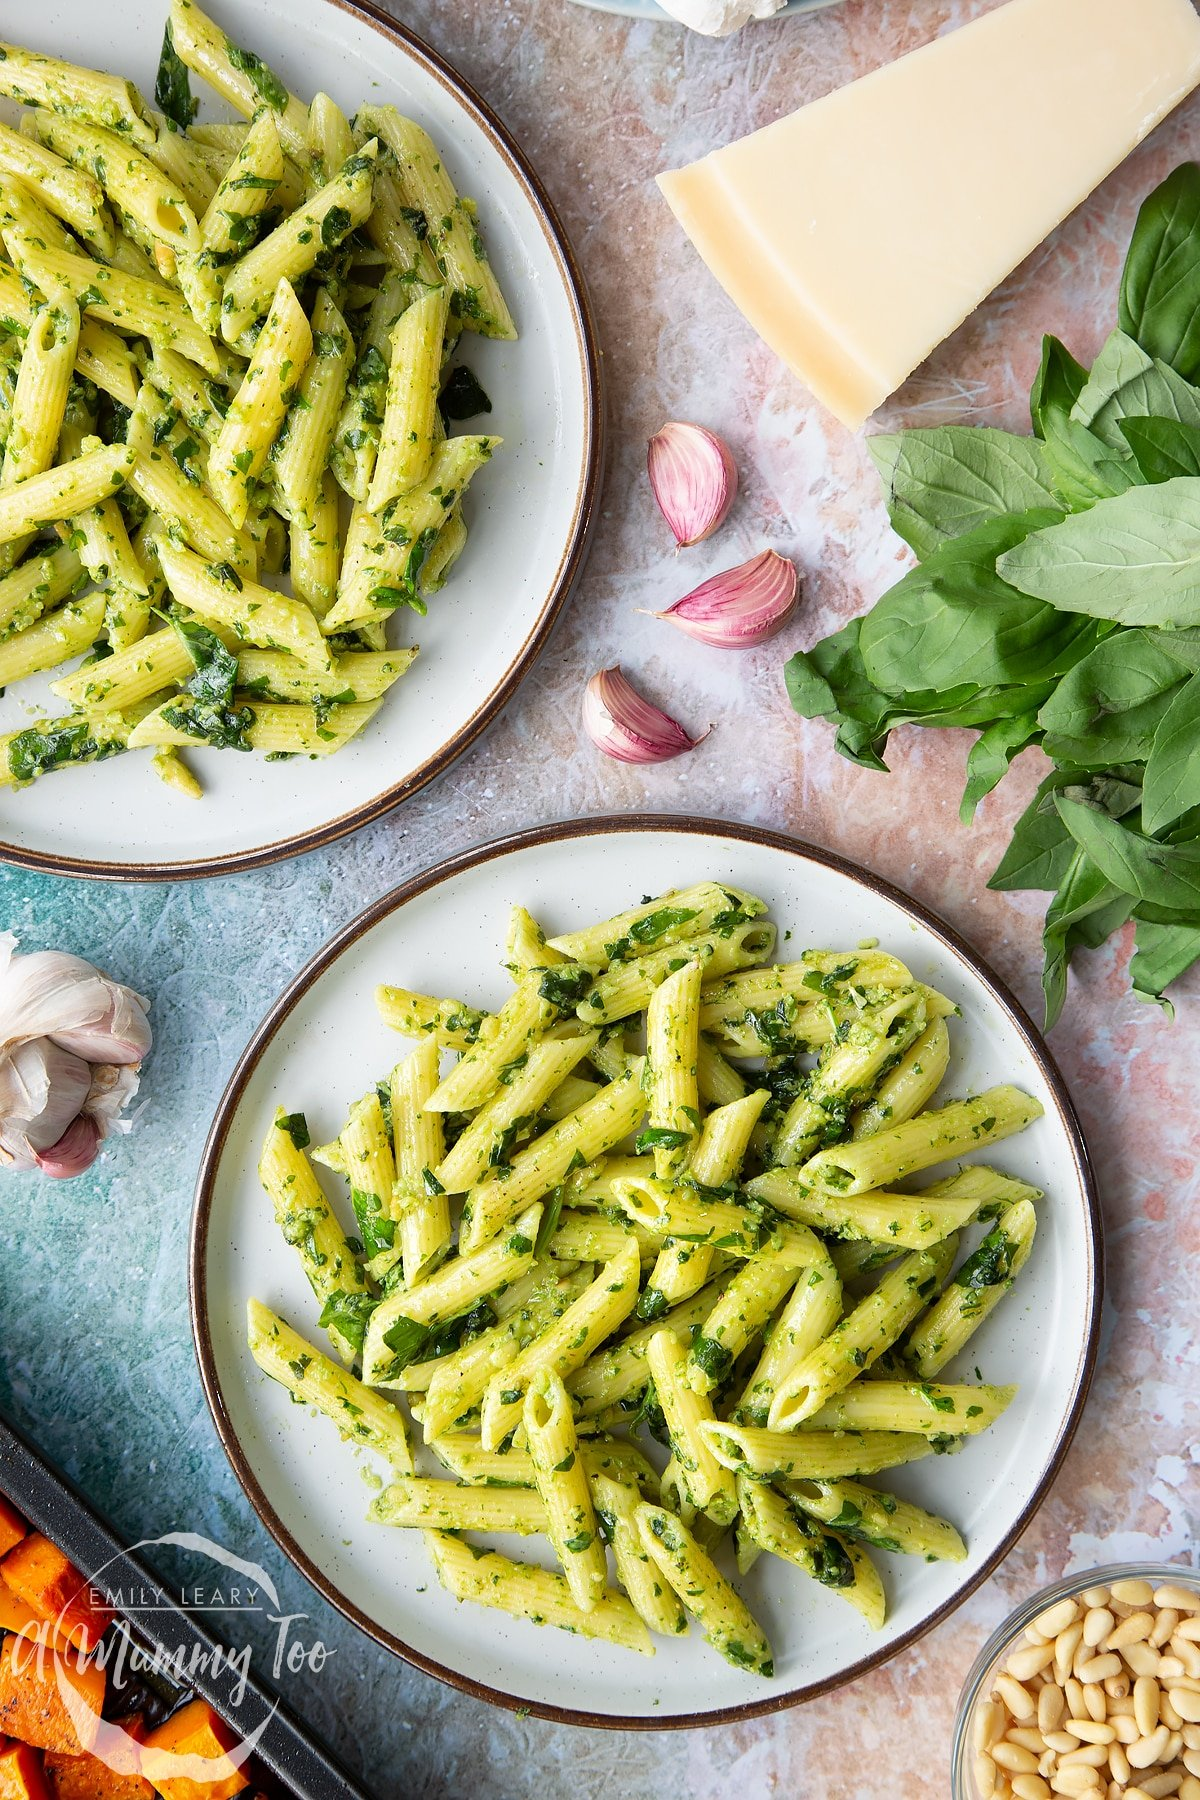 Penne pasta tossed with fresh pesto served to plates. Ingredients to make penne with butternut squash and goat cheese surround the plates.